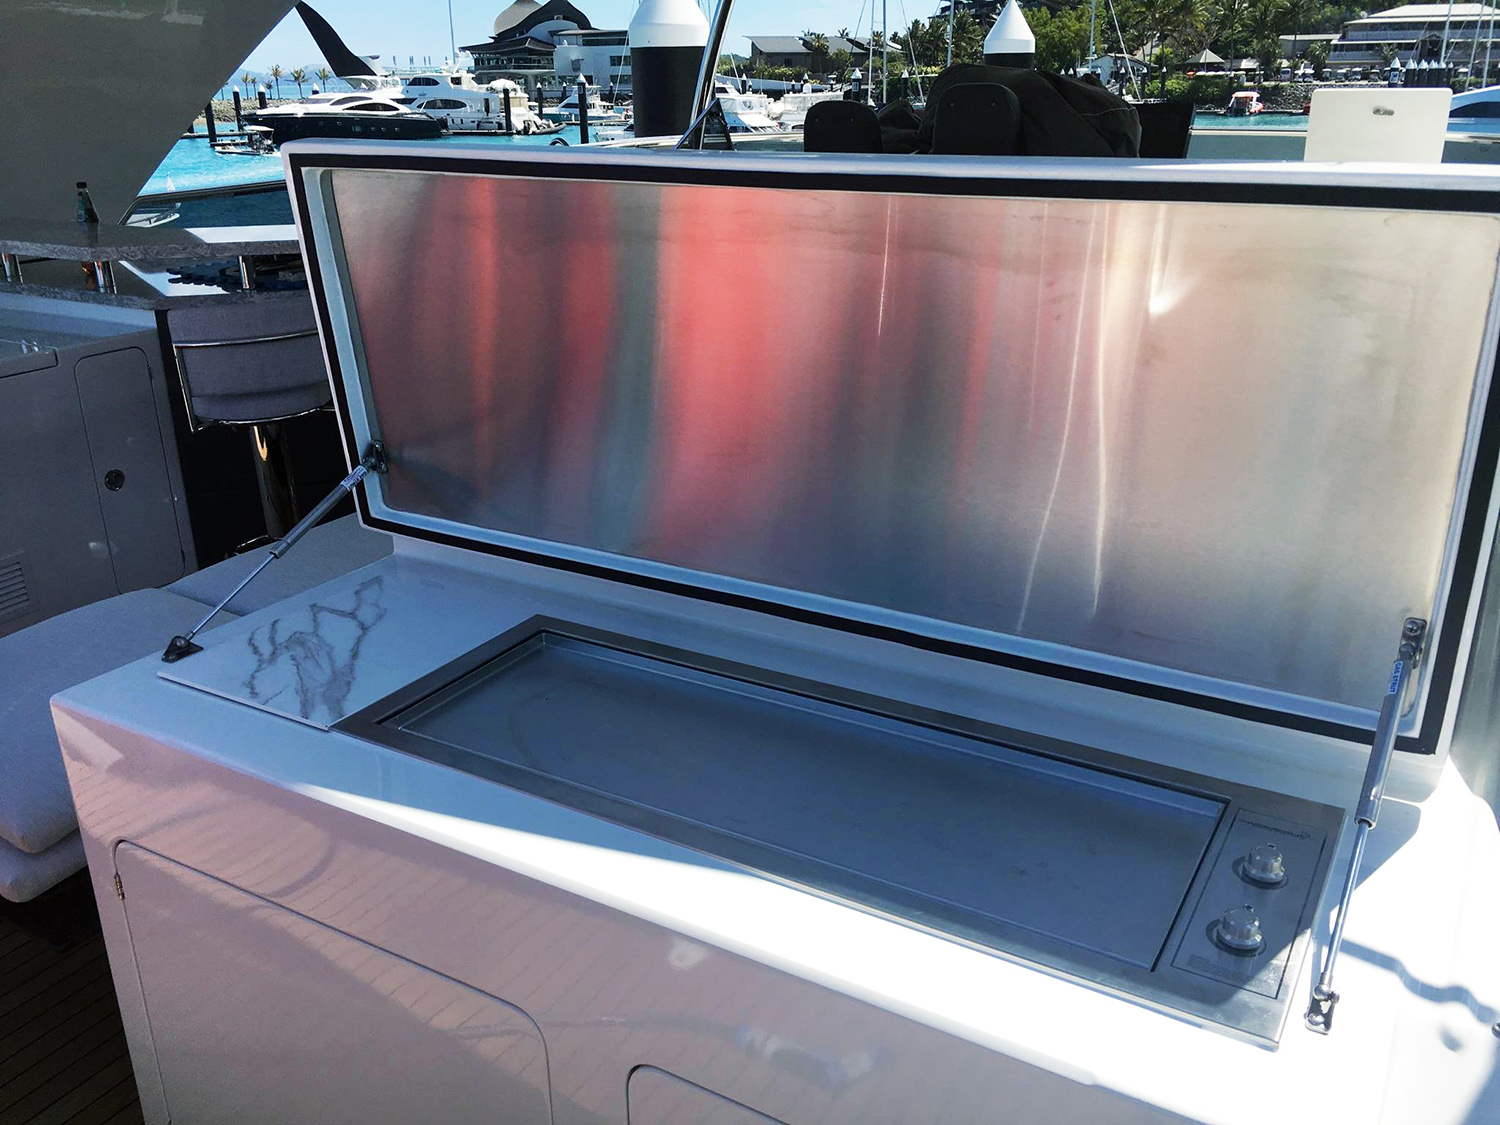 Australian custom 110V electric stainless bbq on luxury boat